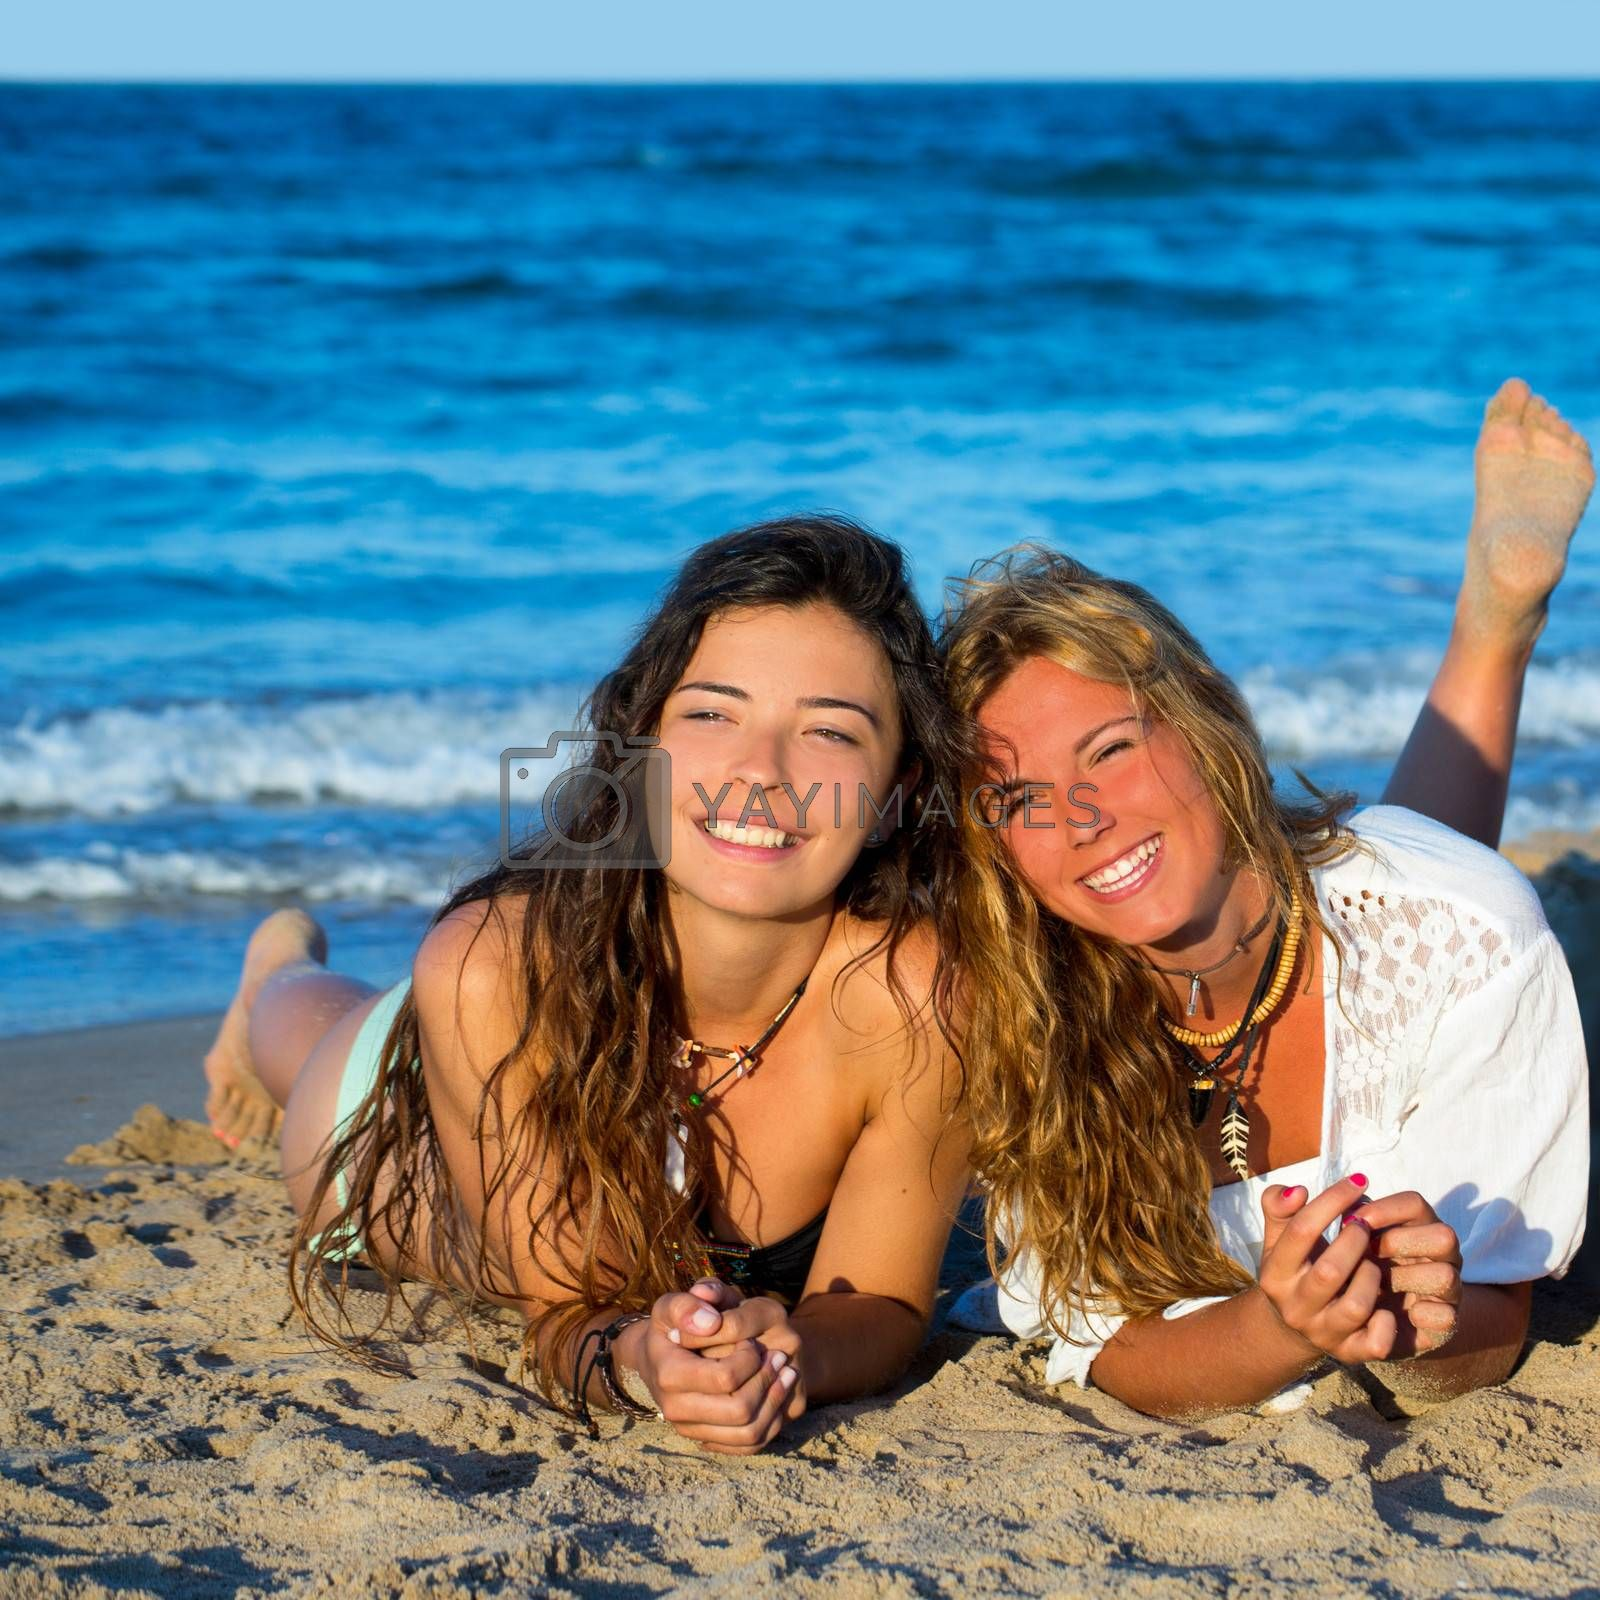 Girls friends having fun happy lying on the beach sand shore